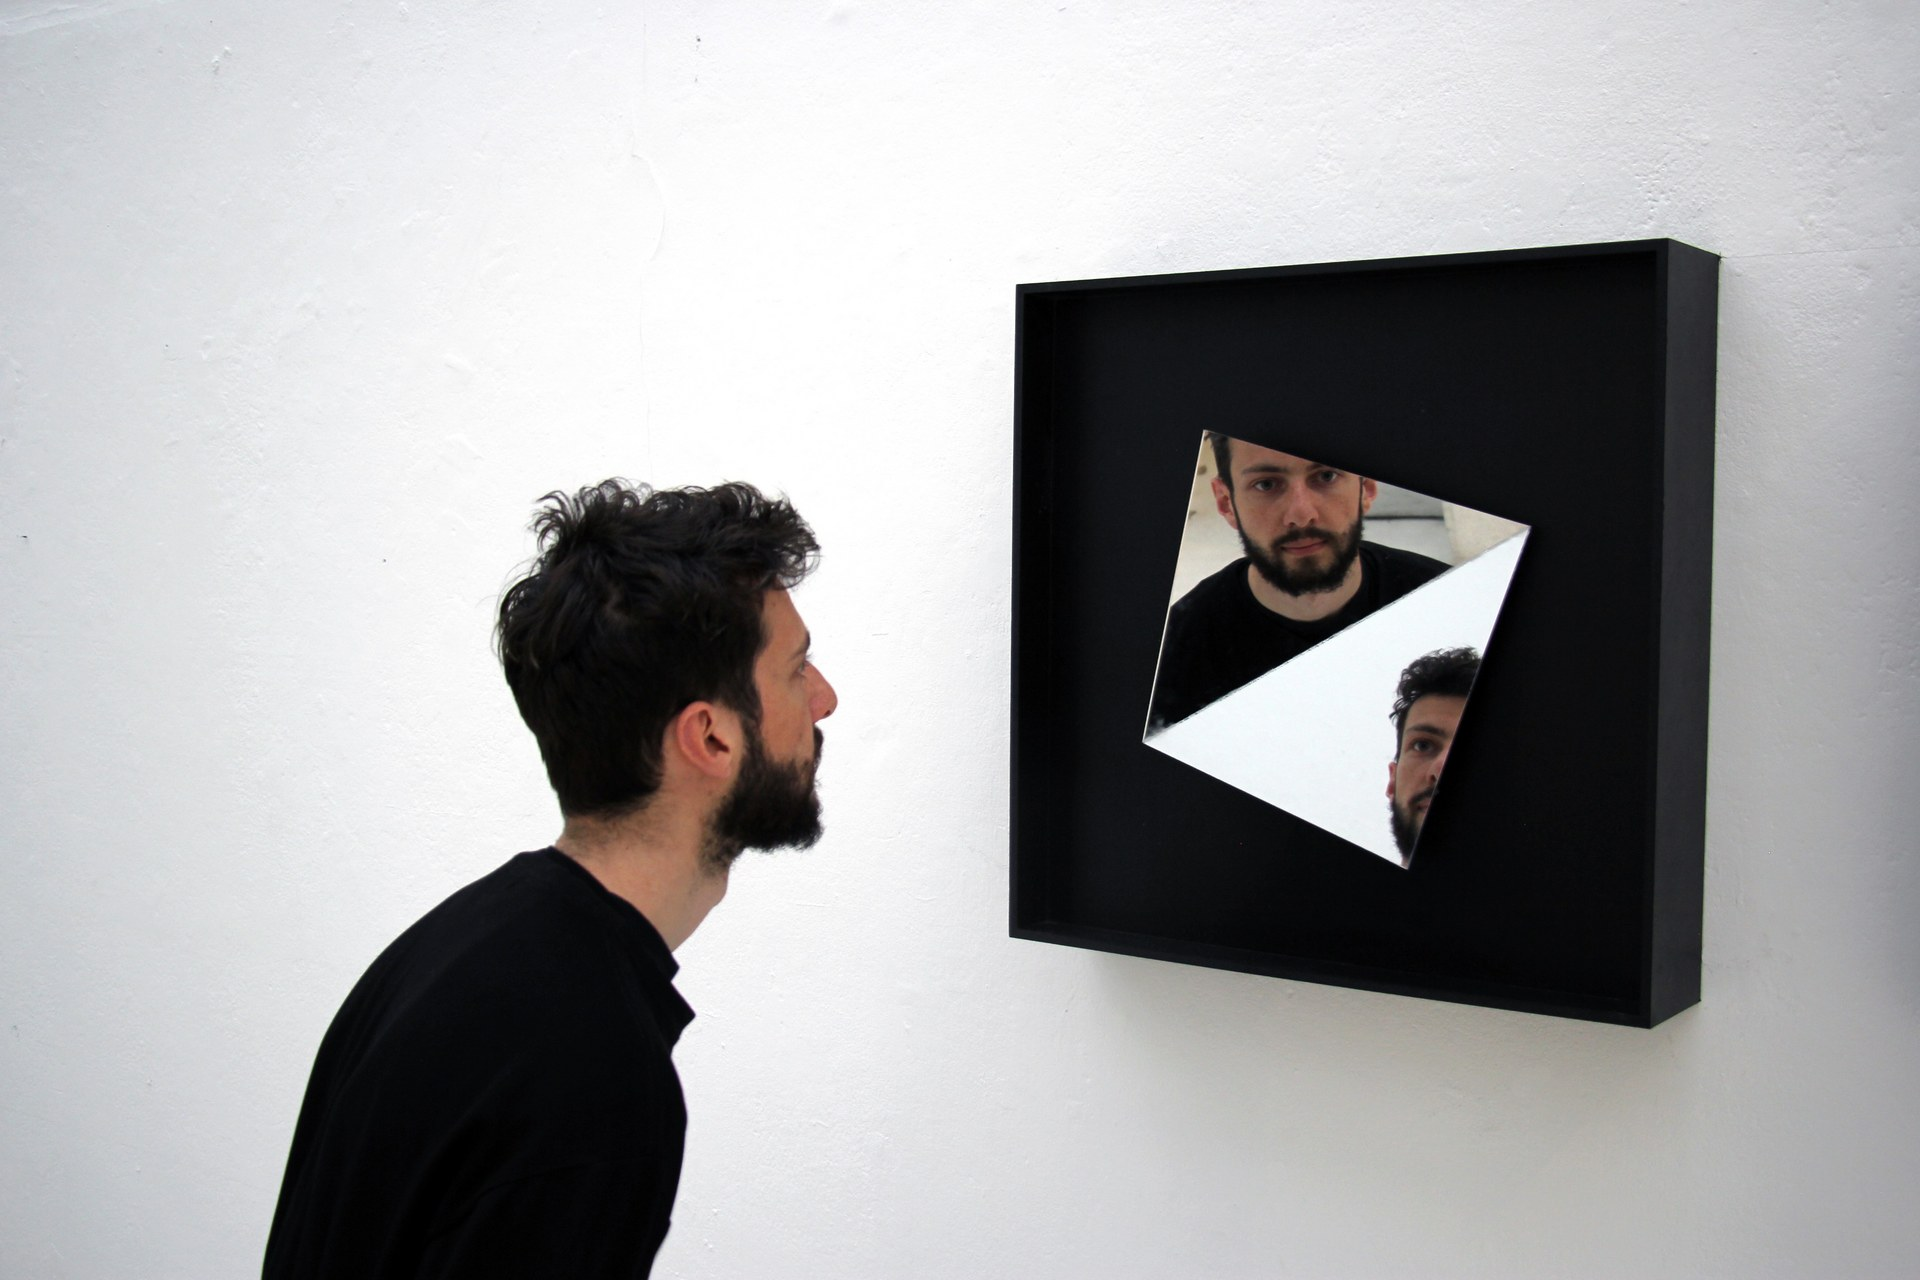 Interaction 1: The Refracting Mirror